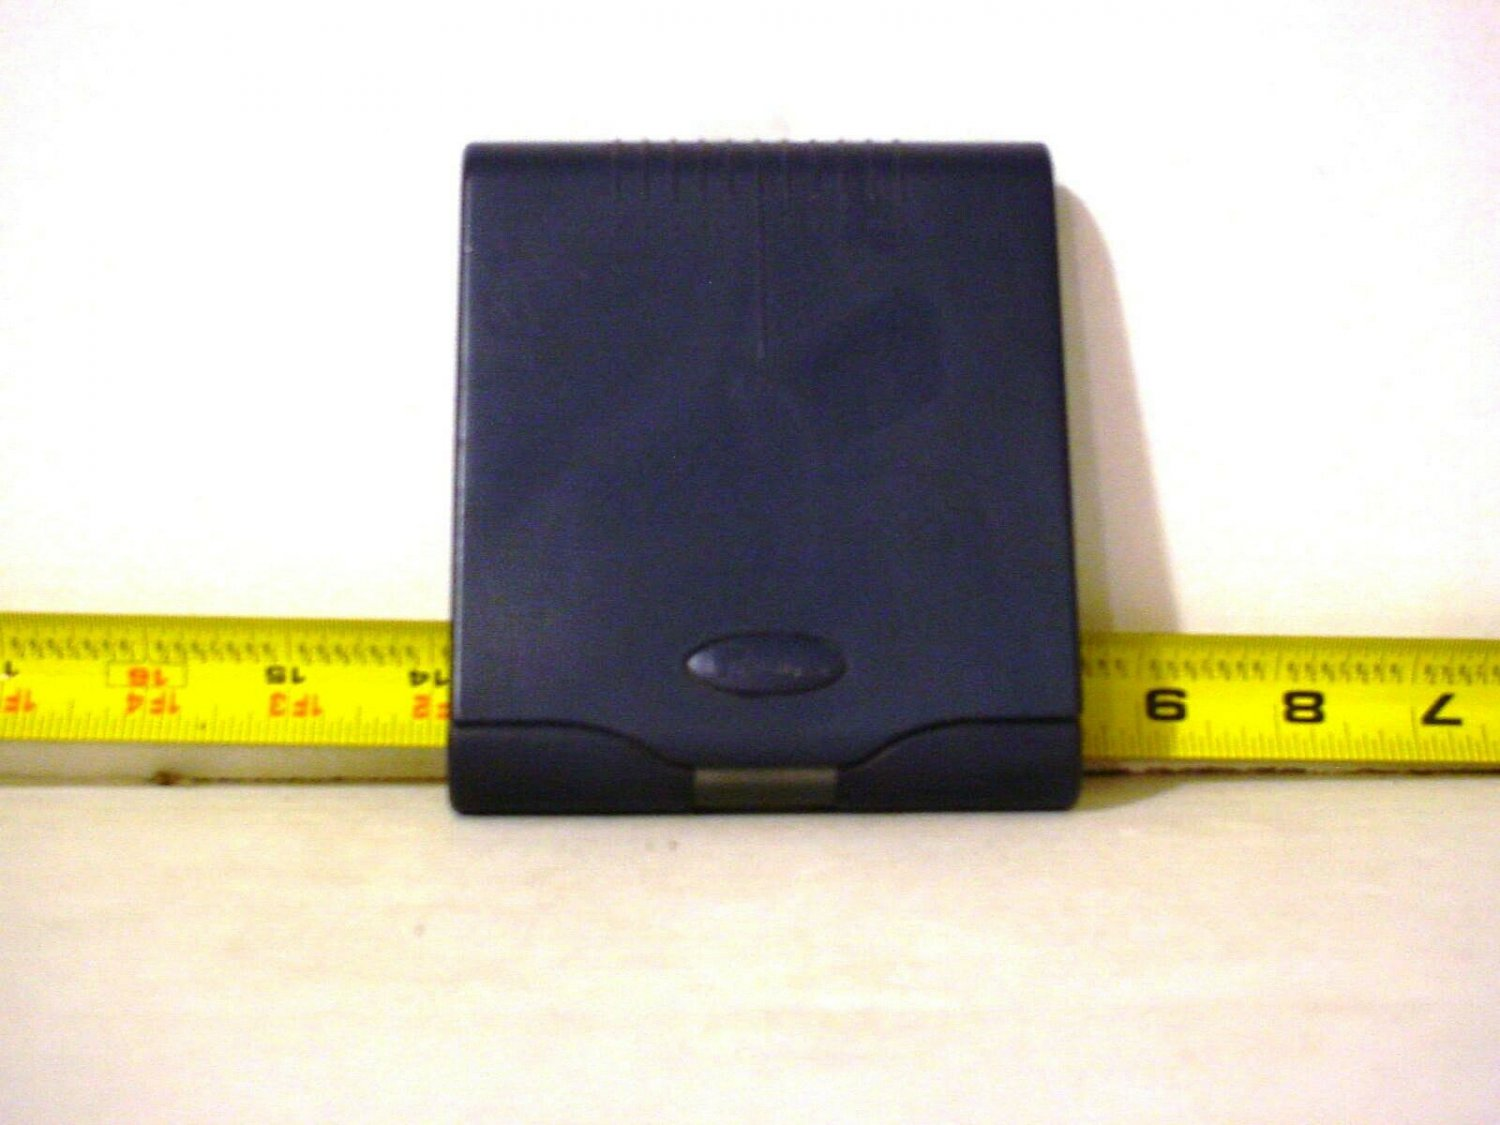 2 Iomega Zip 100MB Disks and 3 disk storage container